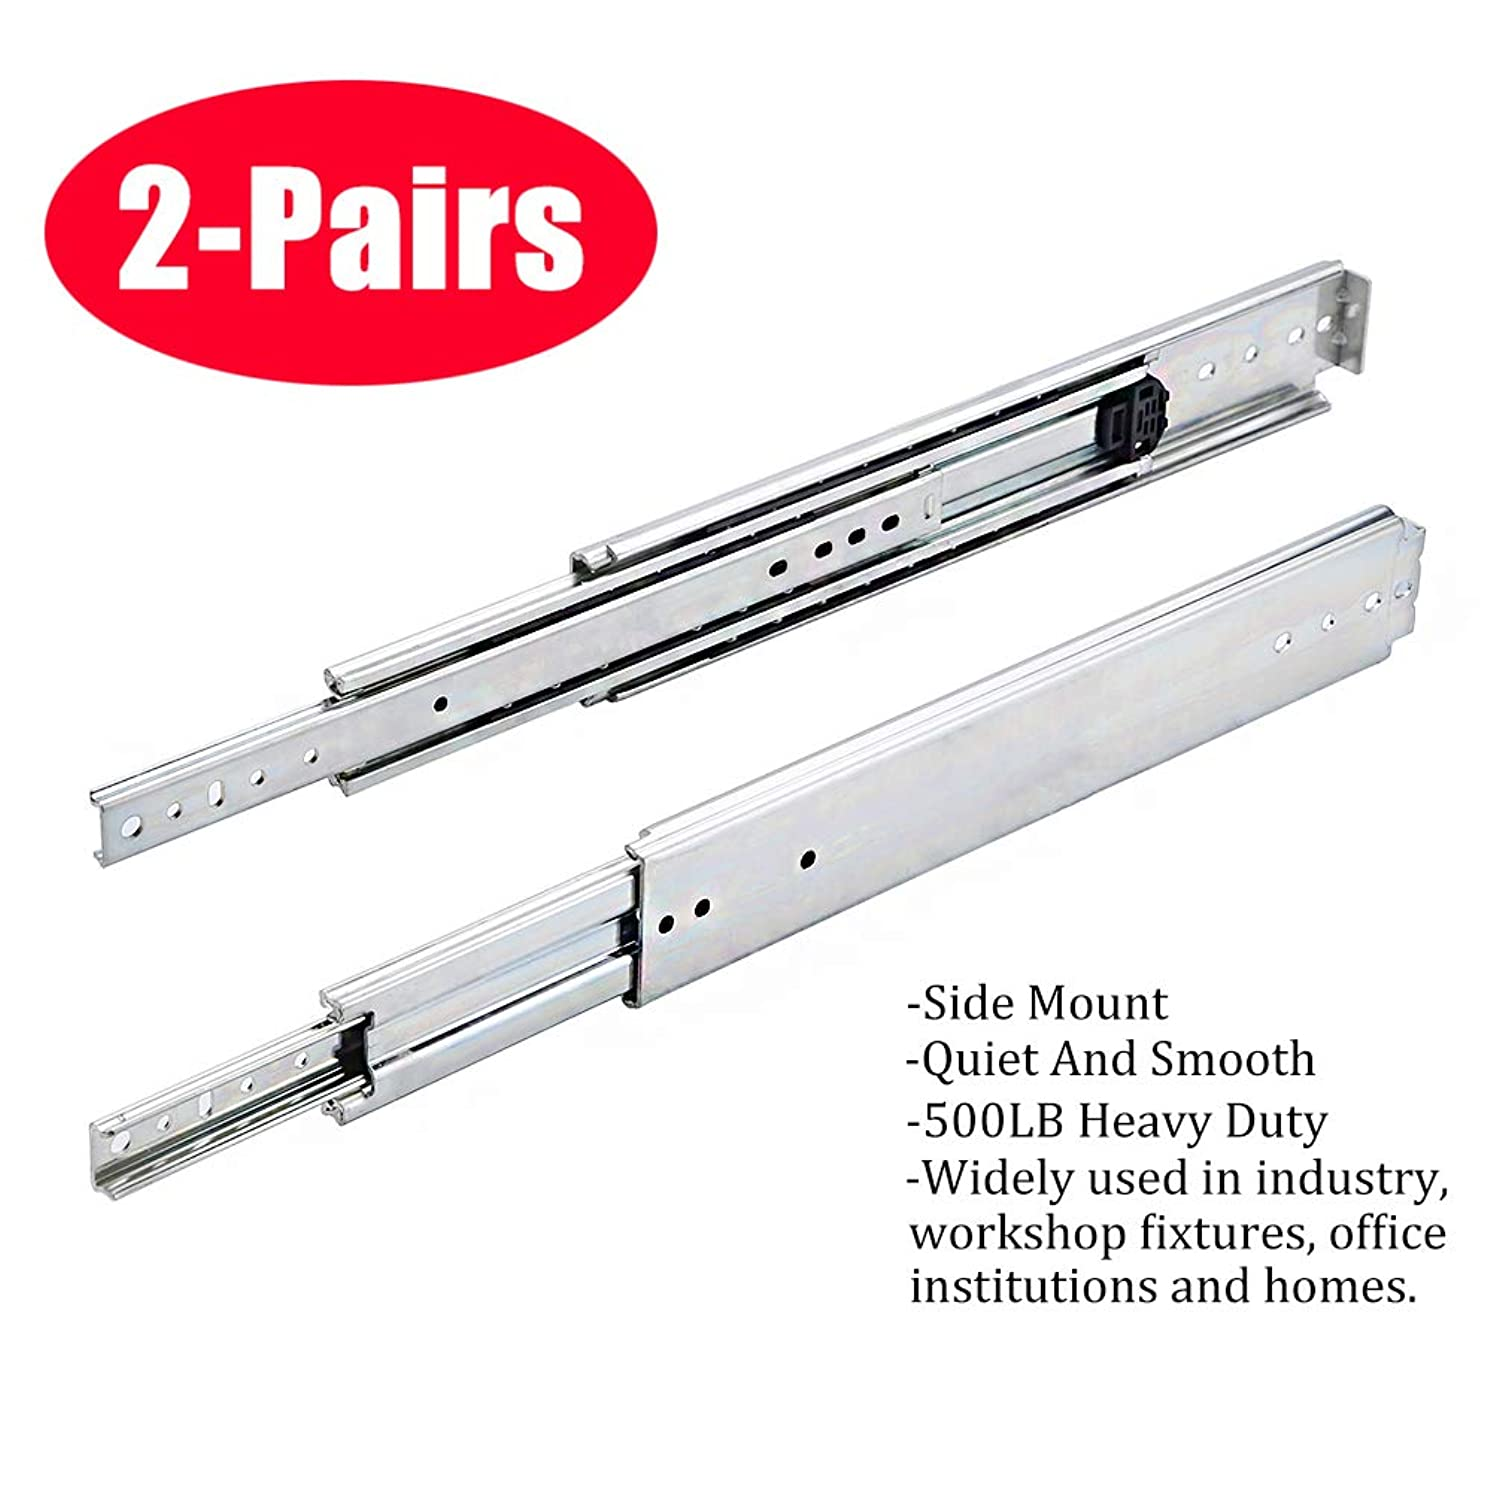 SOTTAE 16 Inch 500LB Capacity Heavy Duty Full Extension Ball Bearing Side Mount Drawer Slides - 2 Pairs,Mounting Screws Included, Available in 10'', 12'', 14'', 16'', 18'', 20'' and 22'' Lengths